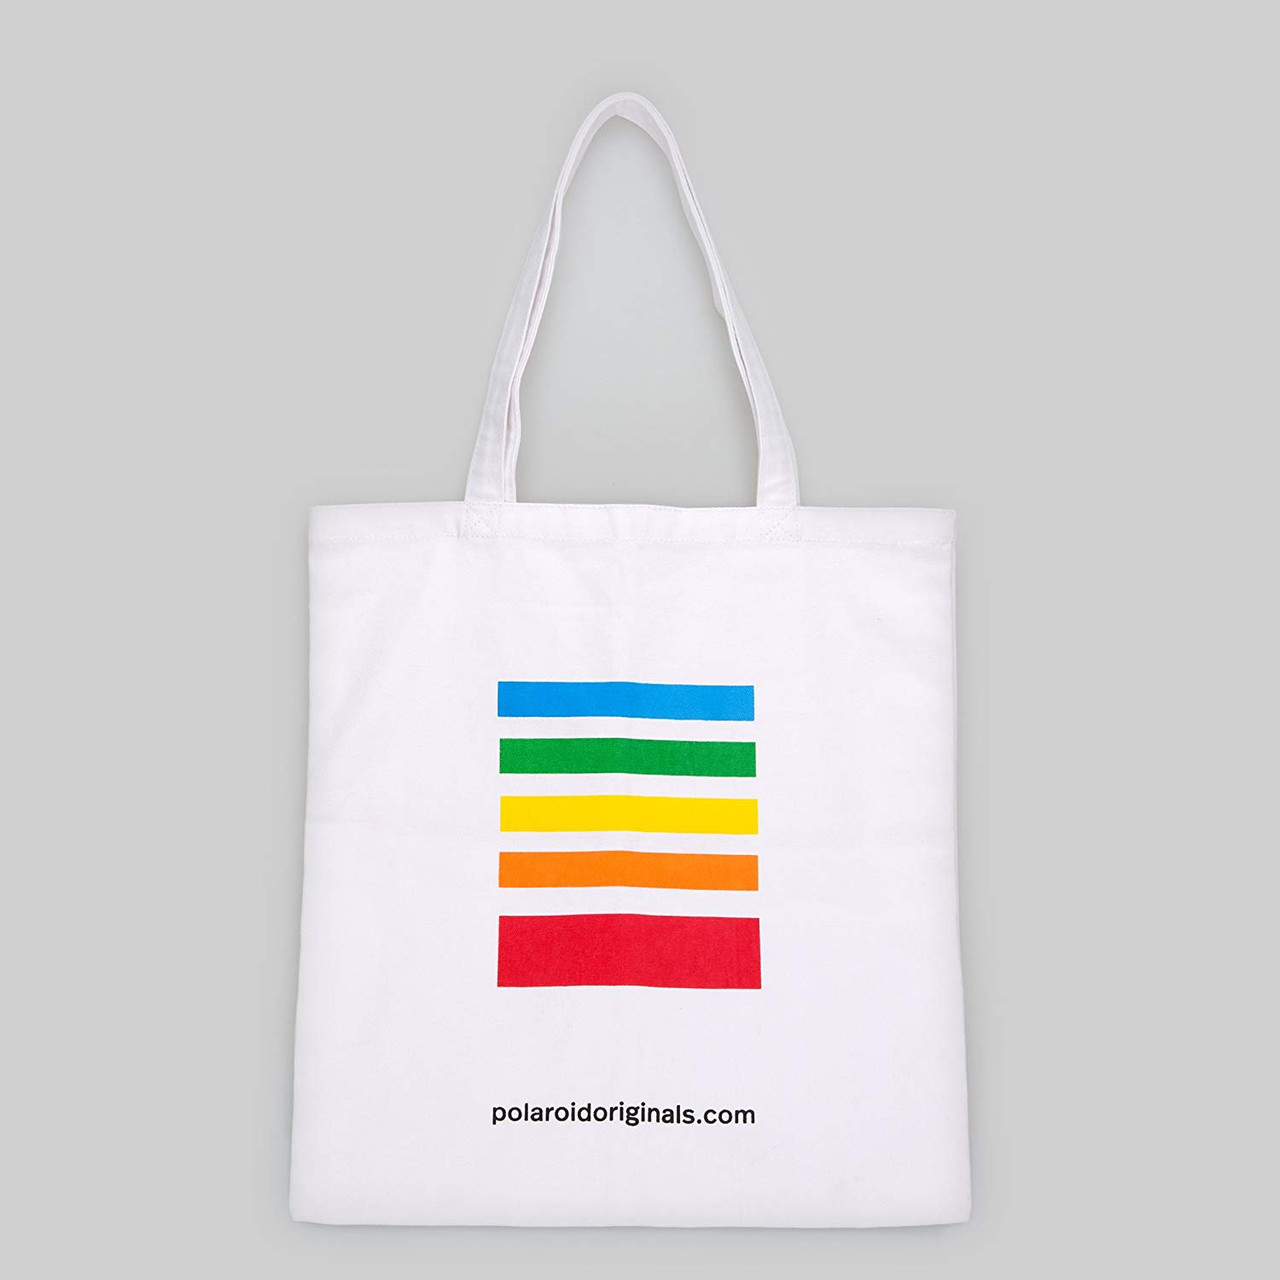 Polaroid Tote Bag - White - Back